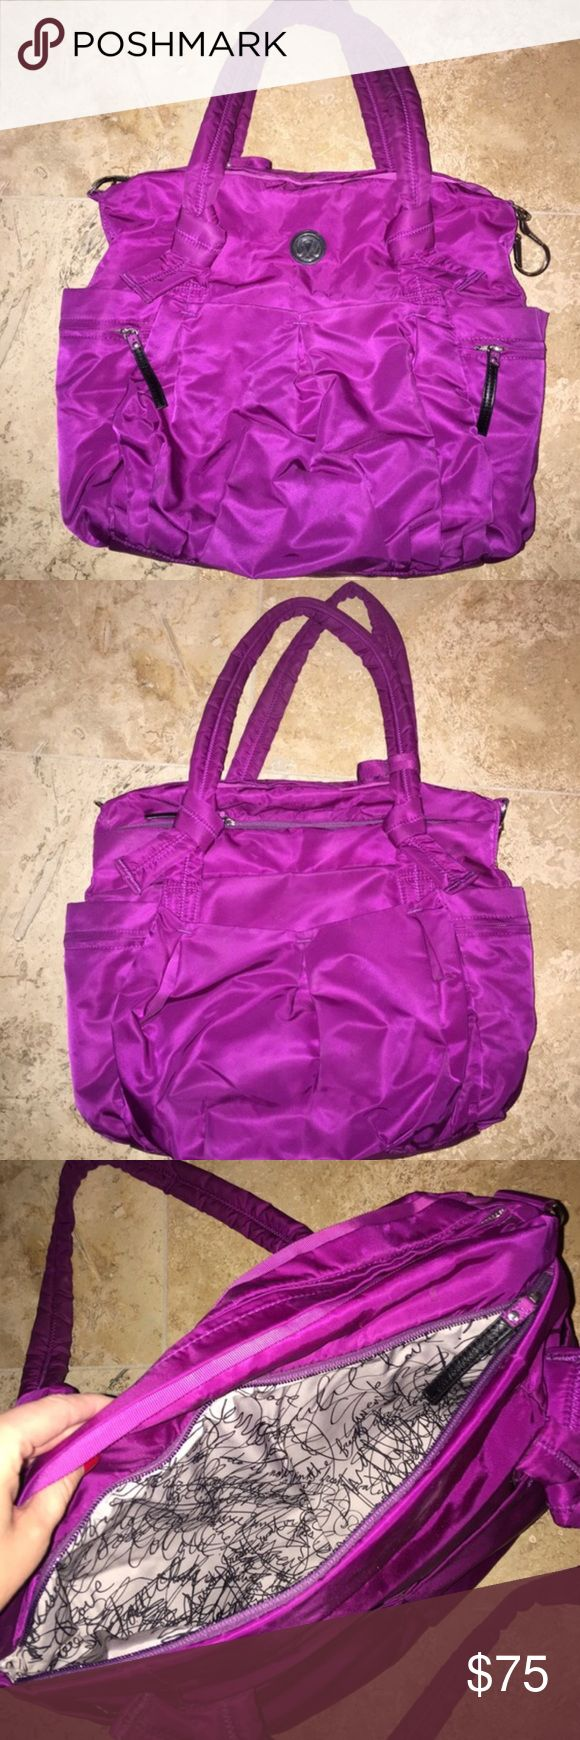 Lululemon Purple Tote Bag Cutest durable nylon feeling lululemon tote bag!!! Amazing bright purple color. Great condition, just a few unnoticeable imperfections on the bottom of the bag. Looks new & can fit a lot of stuff! lululemon athletica Bags Totes